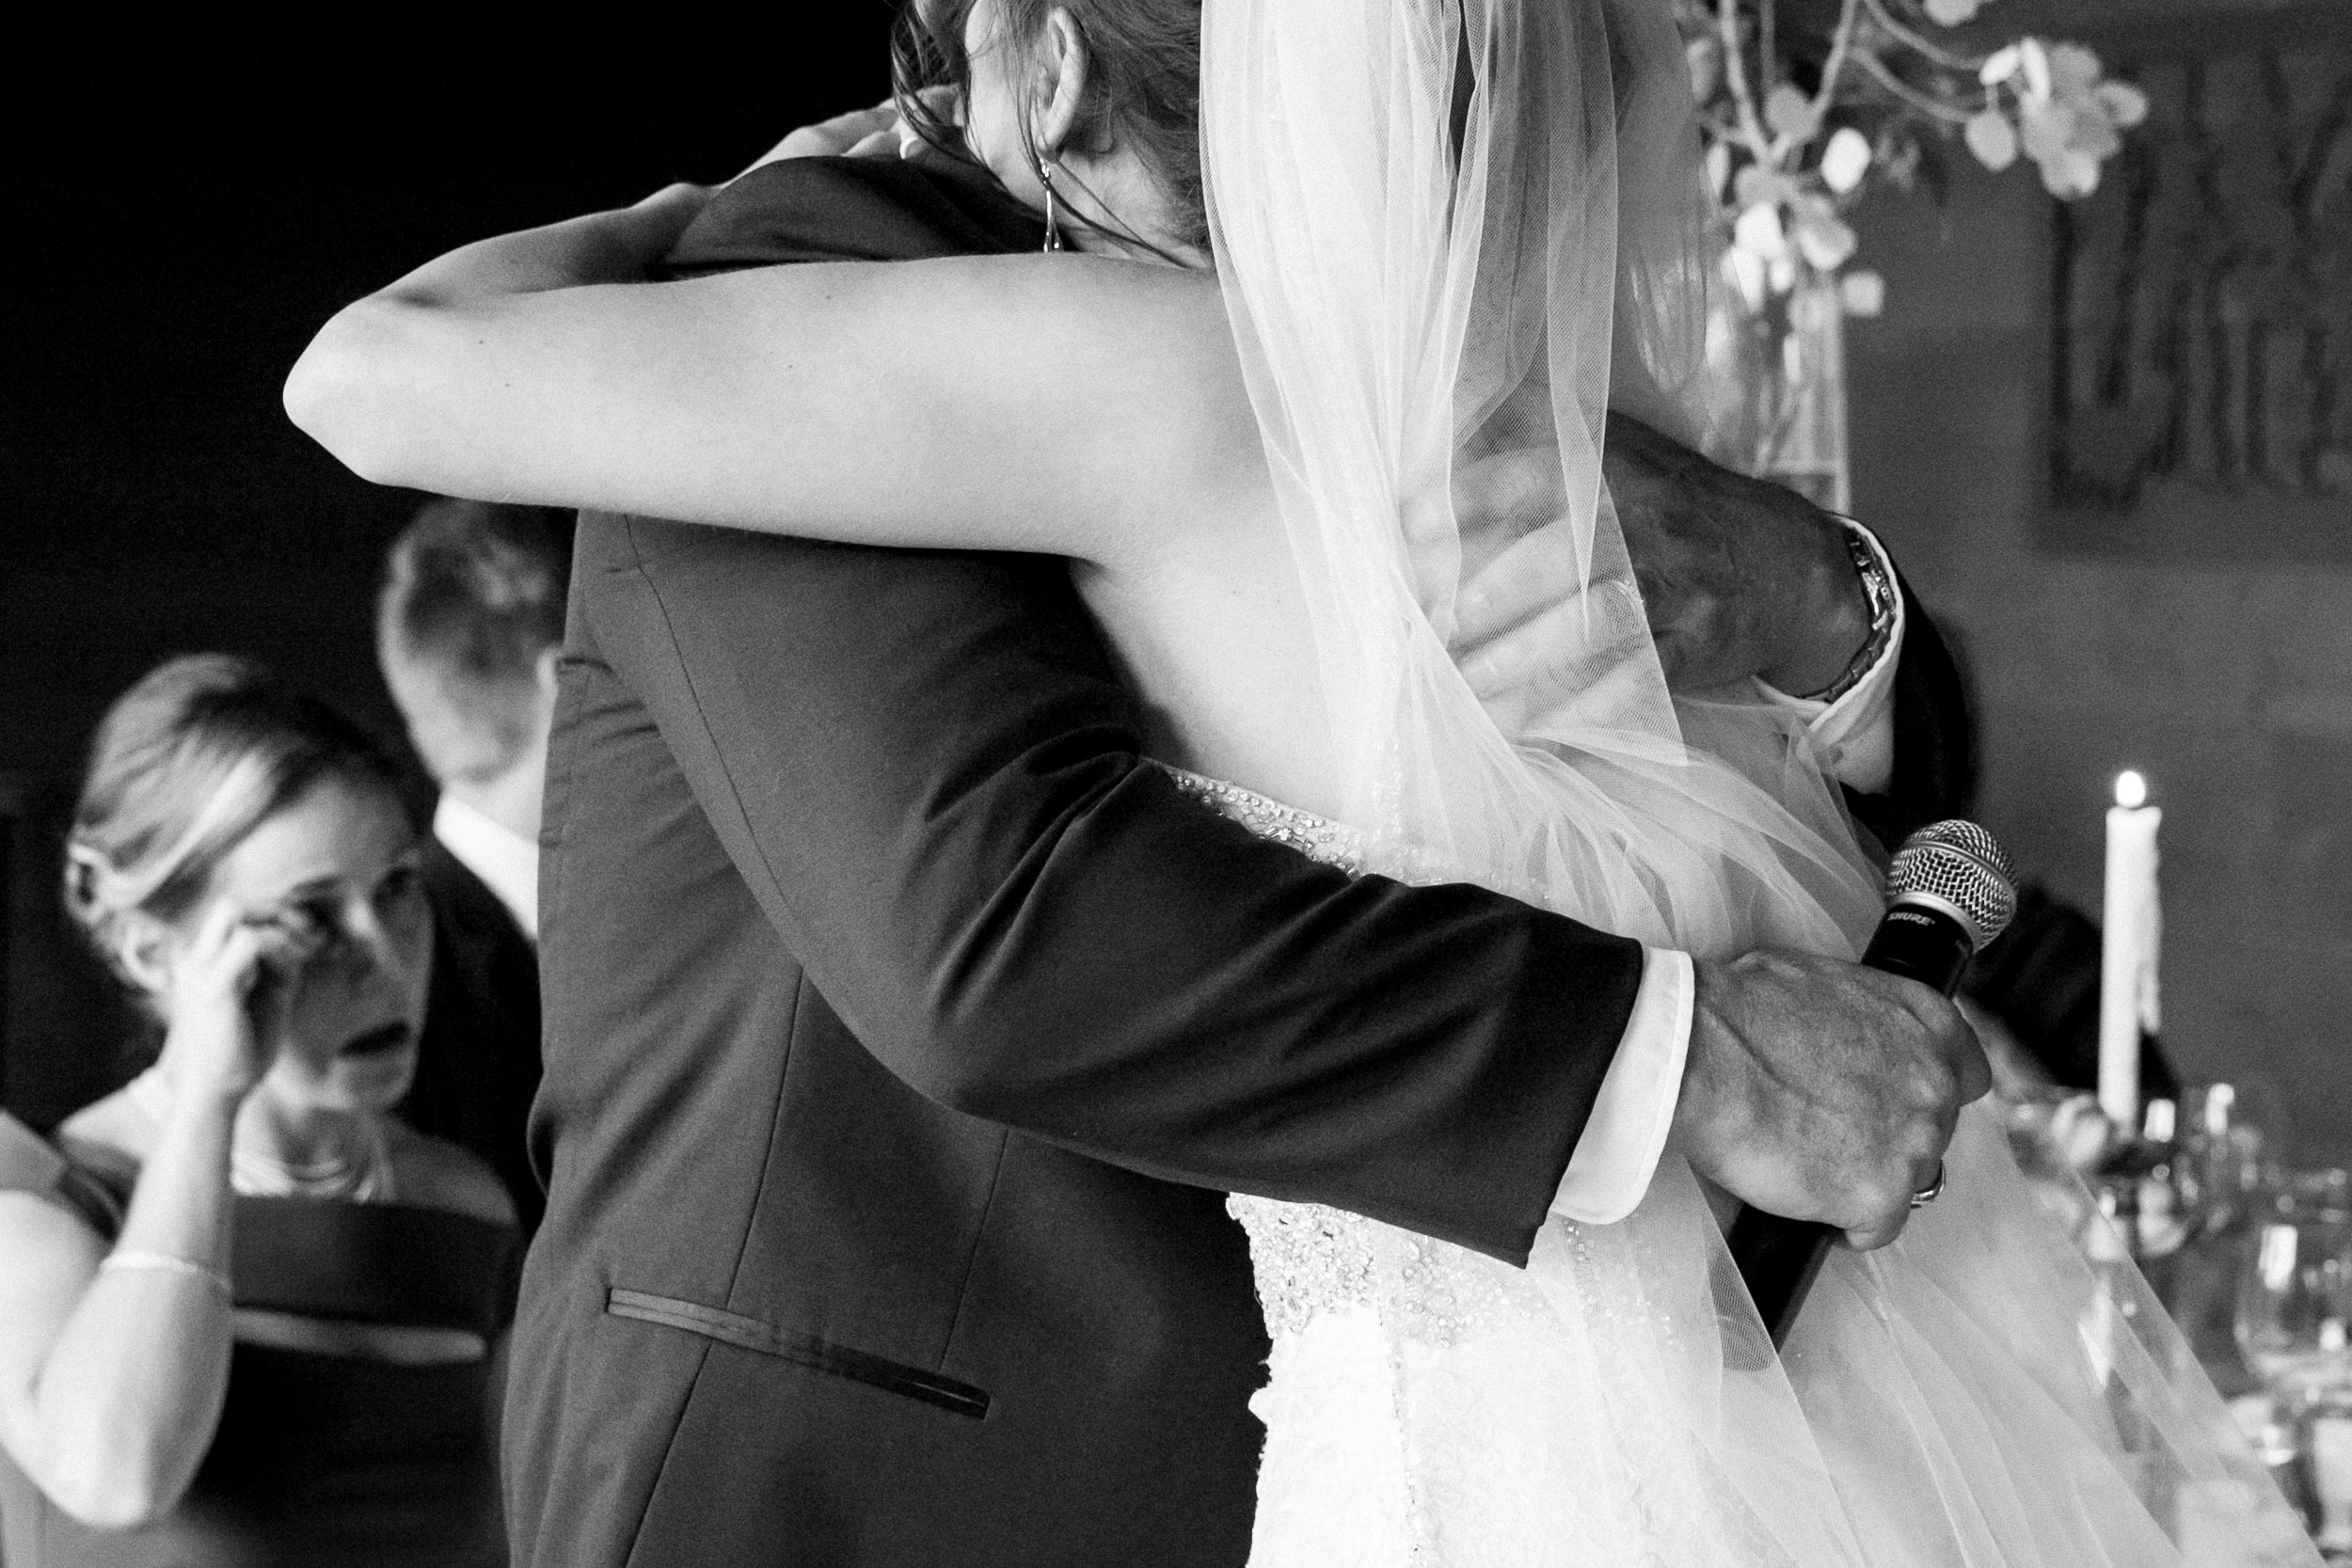 010_The best wedding photography from Jackson Hole, Wyoming and beyond by photographer Hannah Hardaway.jpg